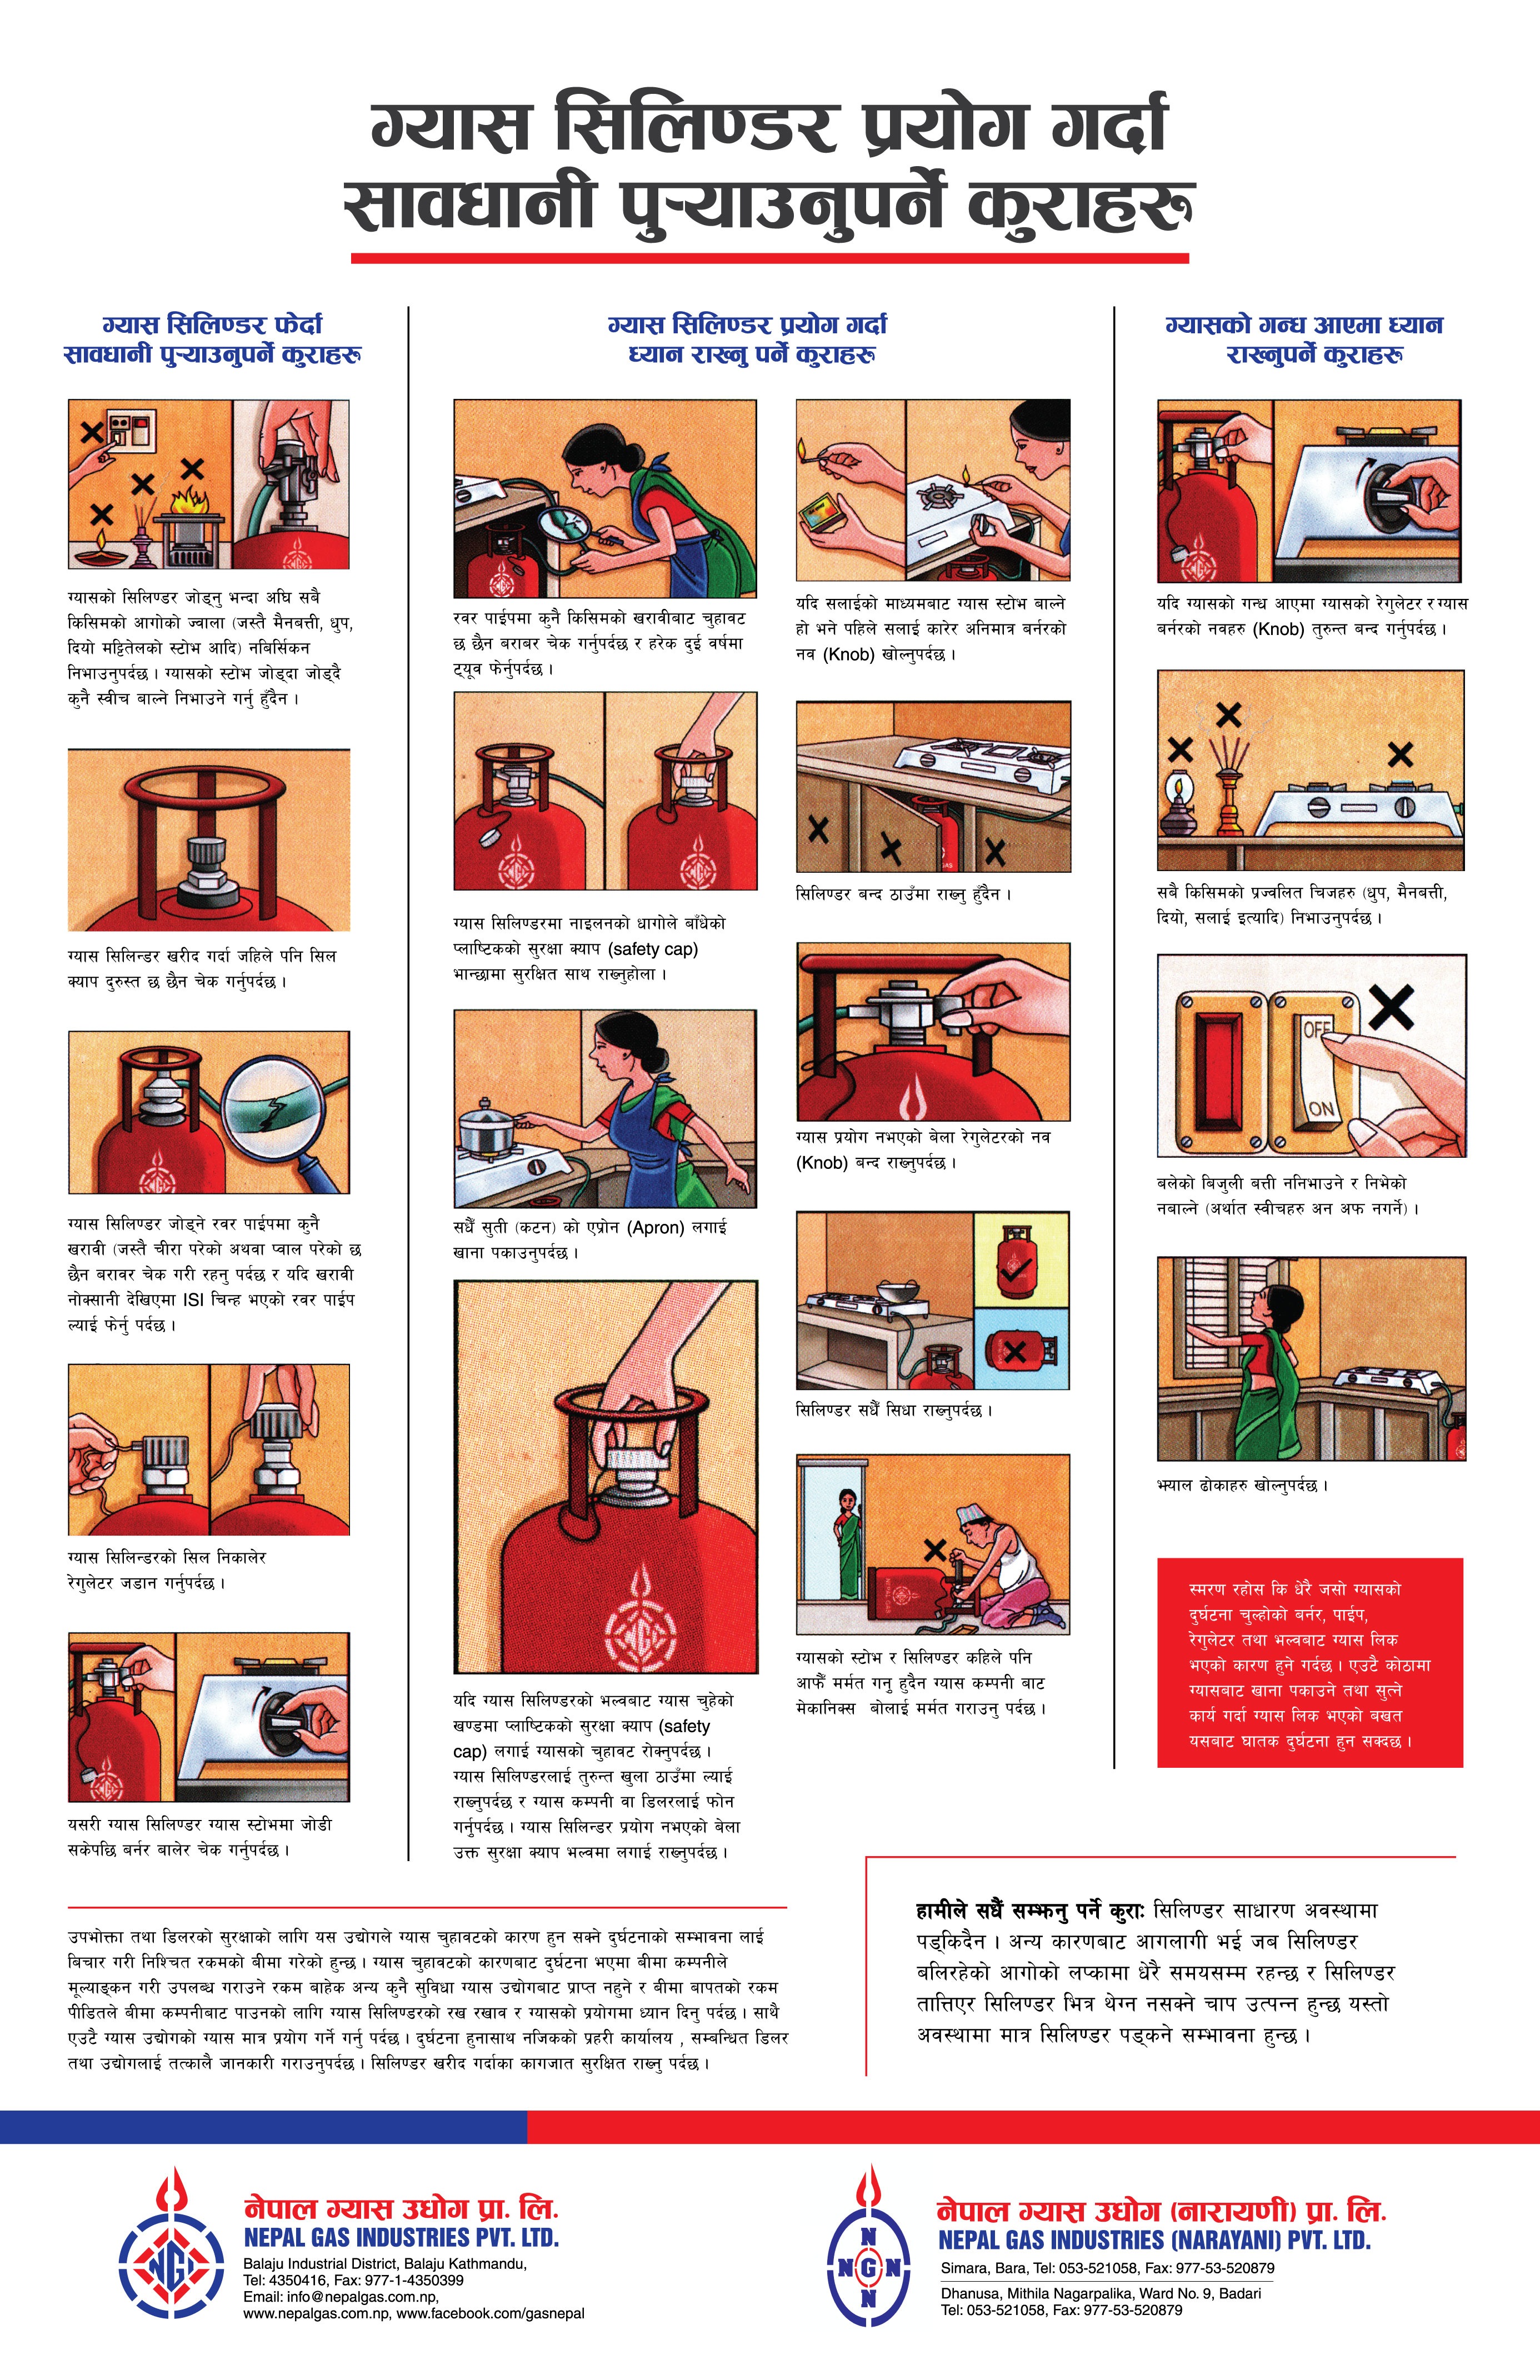 Safety Tips for Consumer